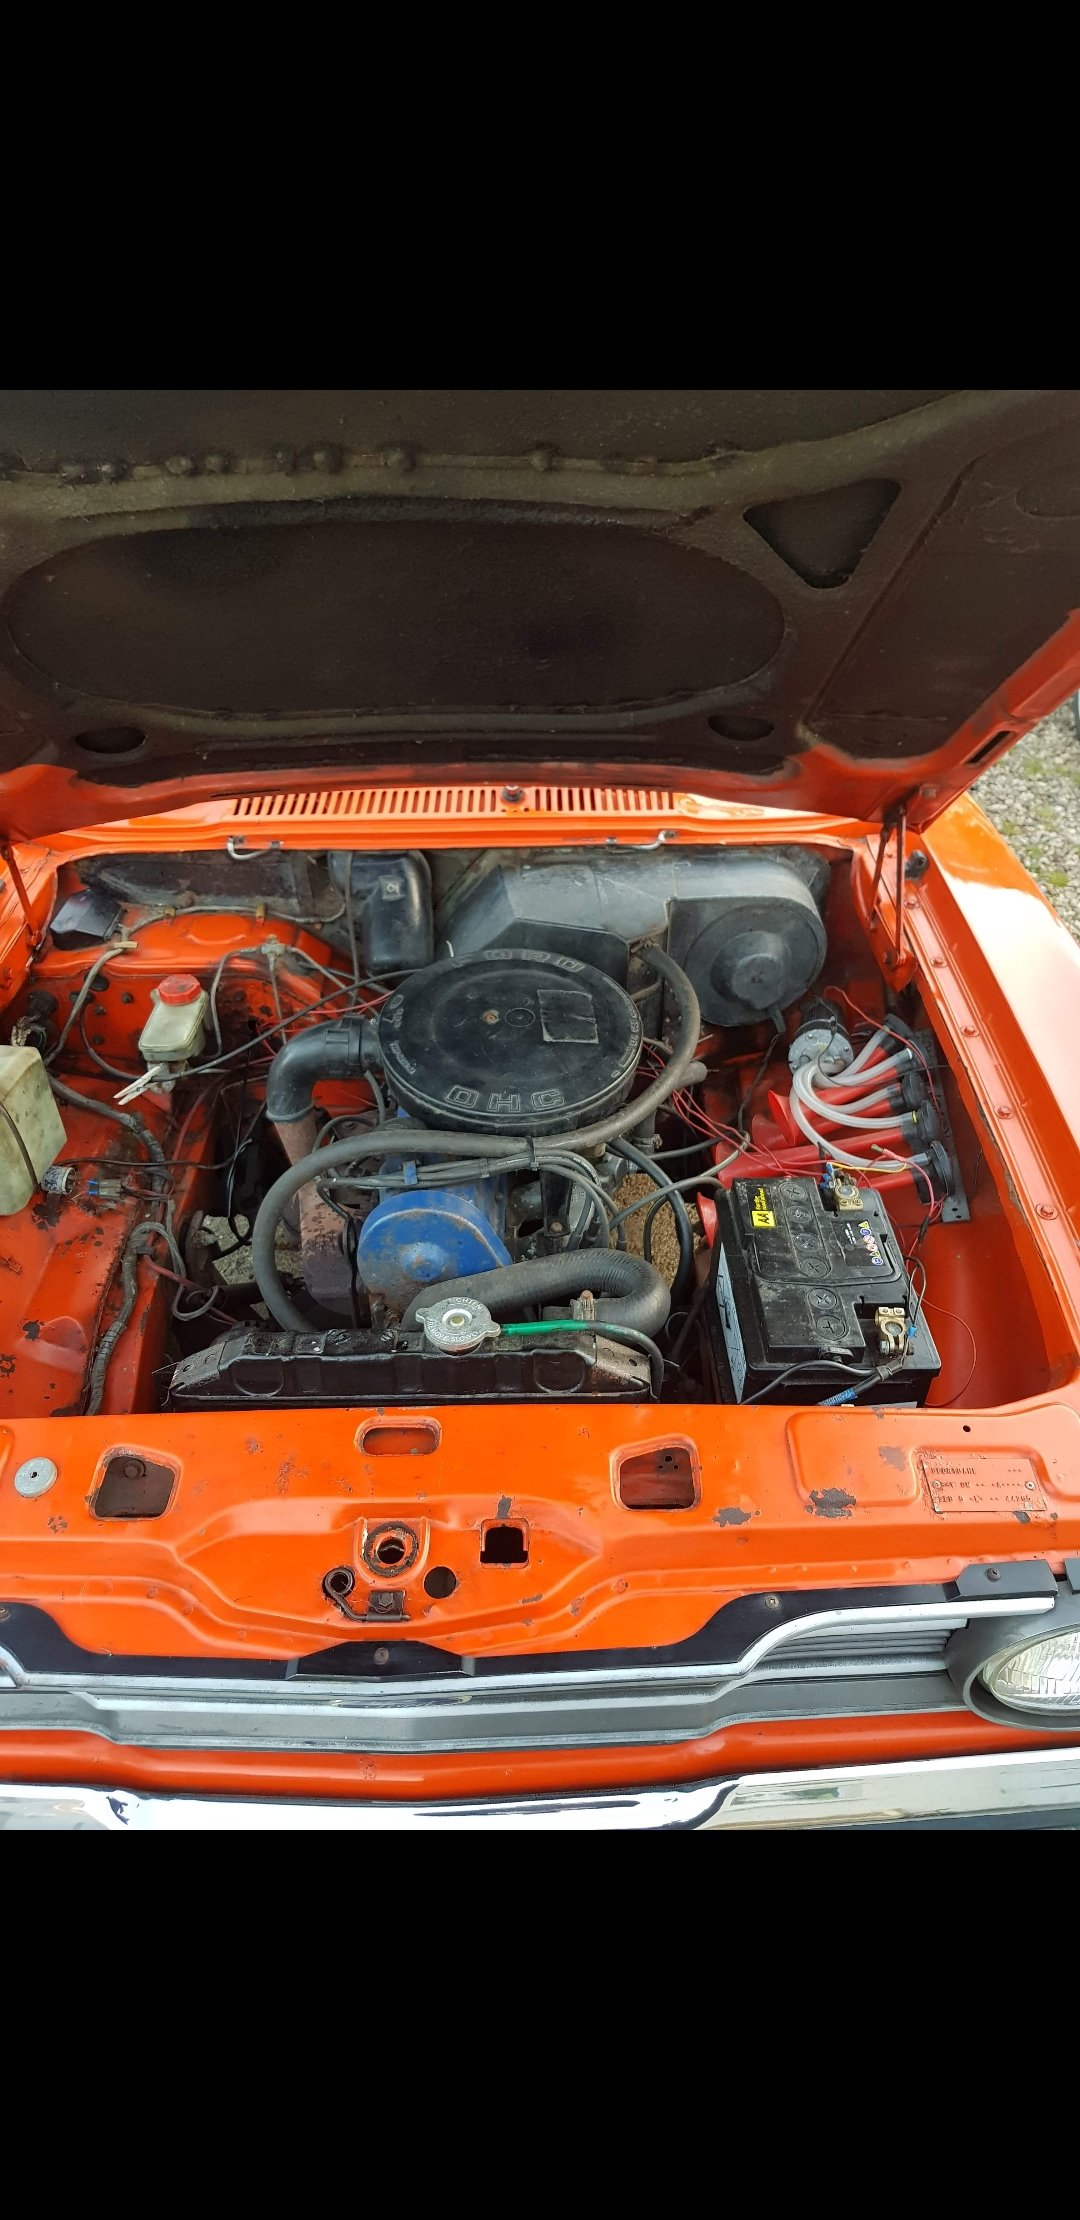 1974 Ford cortina For Sale (picture 4 of 5)